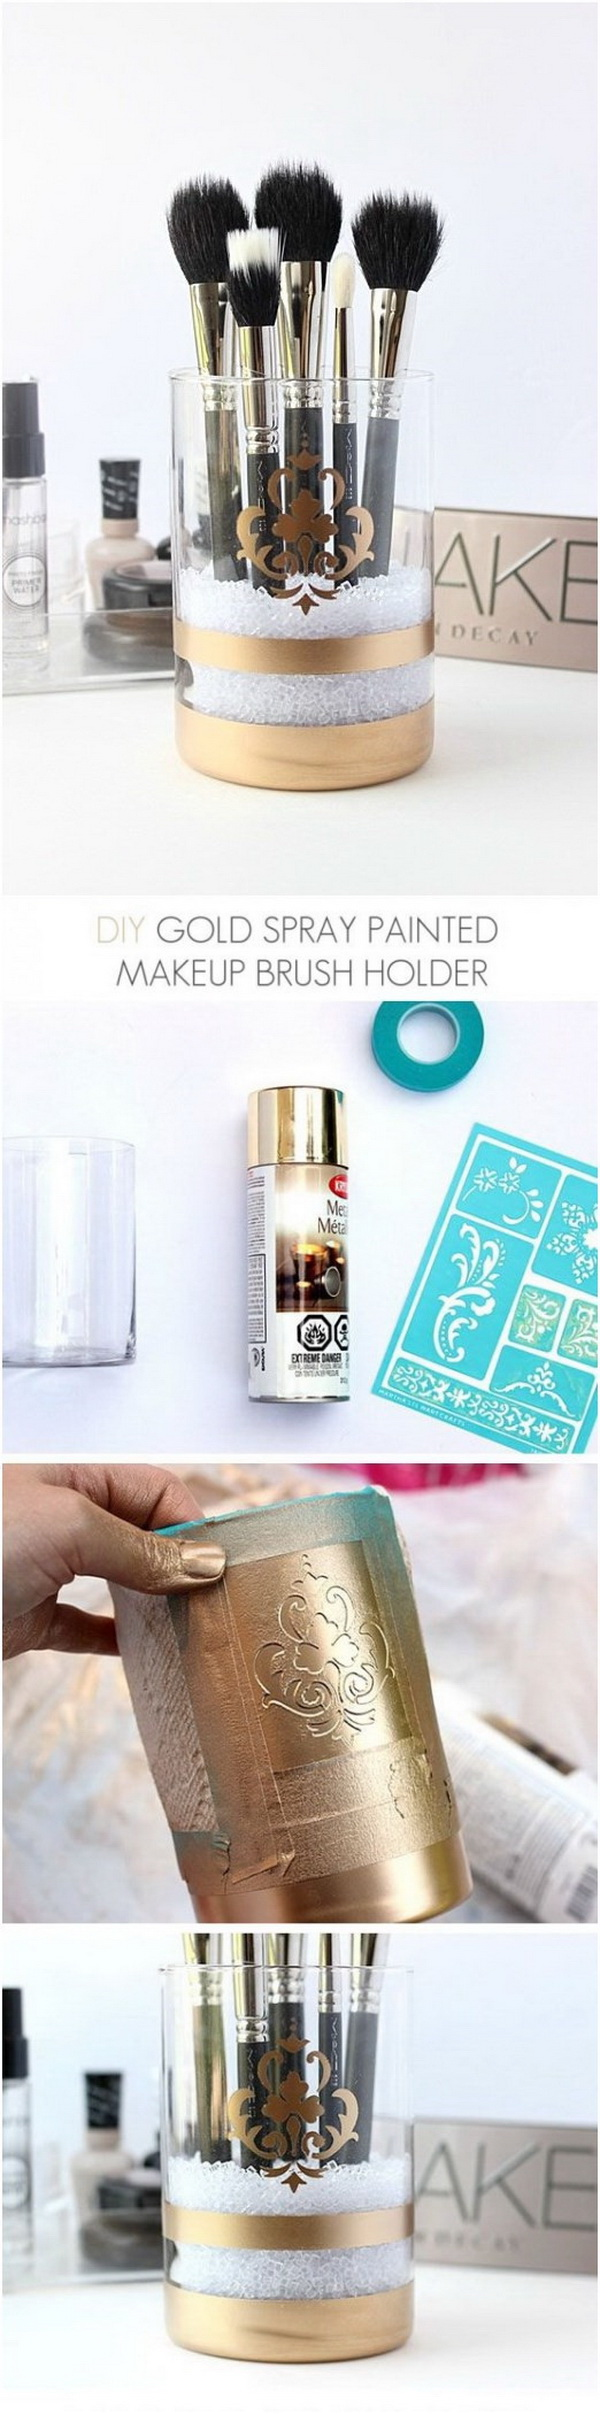 DIY Gold Spray Painted Makeup Brush Holder. With Just A Few Steps, You Can